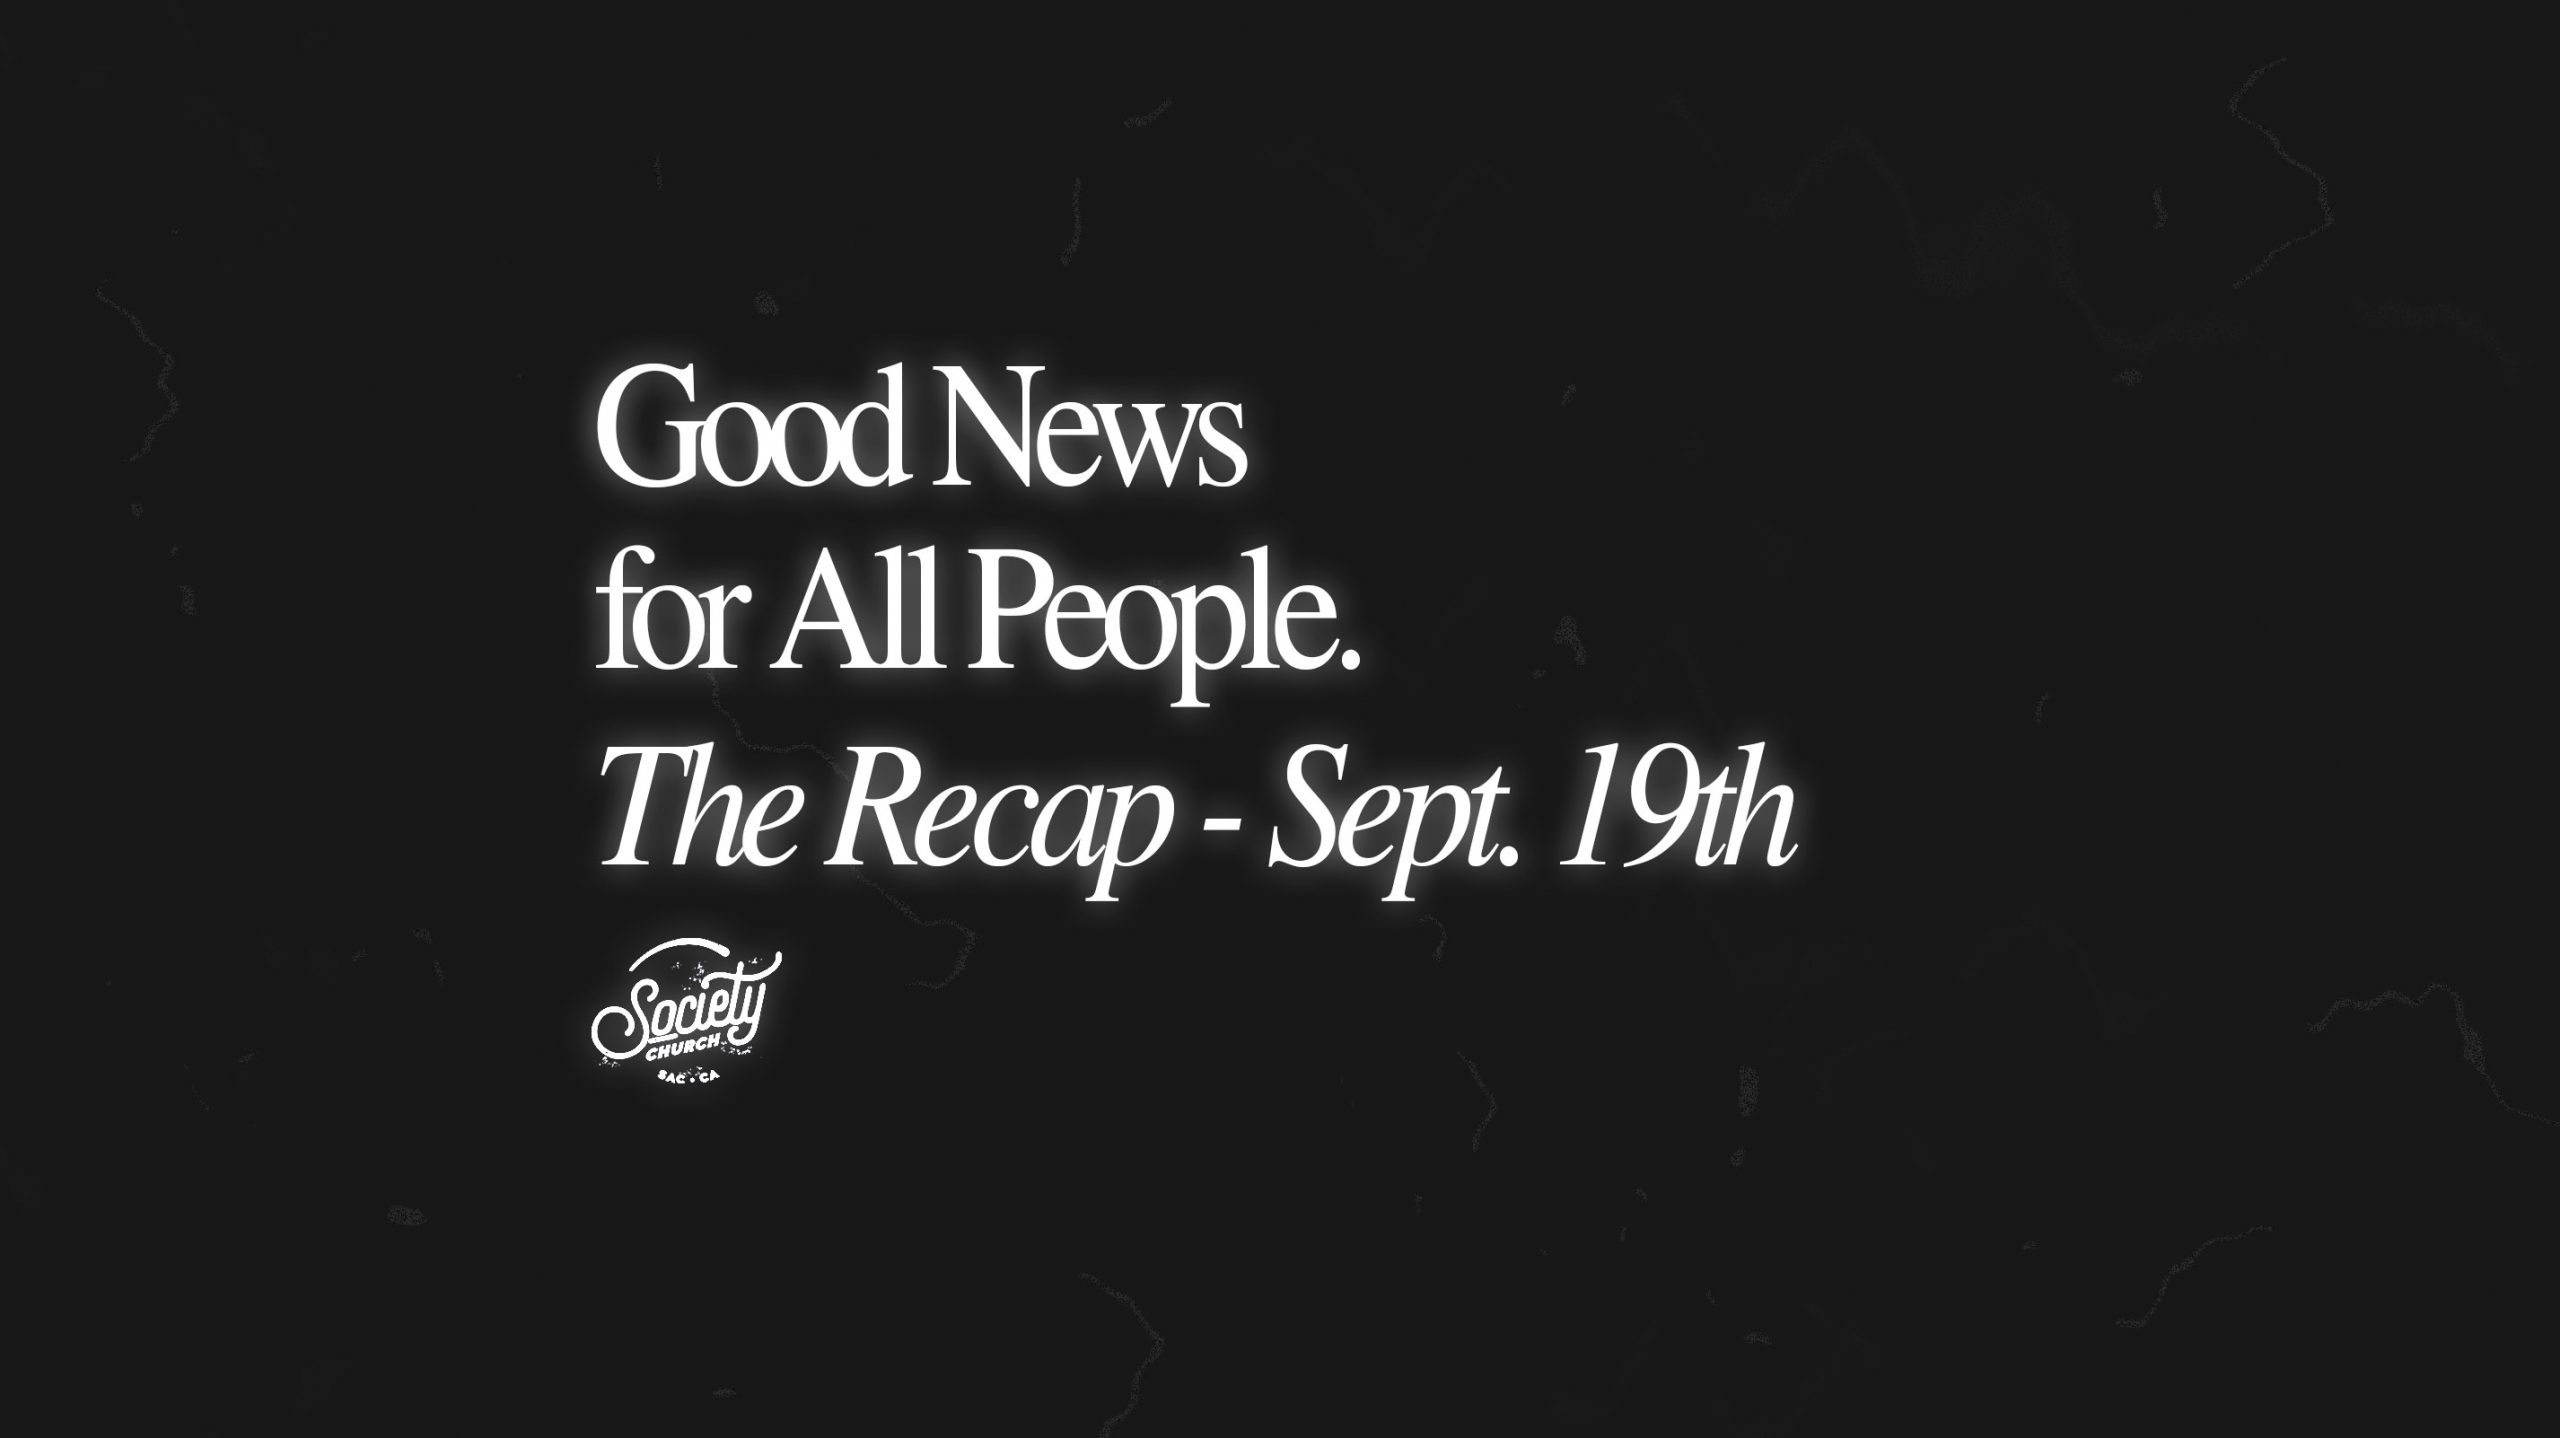 Sunday Recap: Good News for All People, even the skeptics, cynics, doubtful and disappointed.